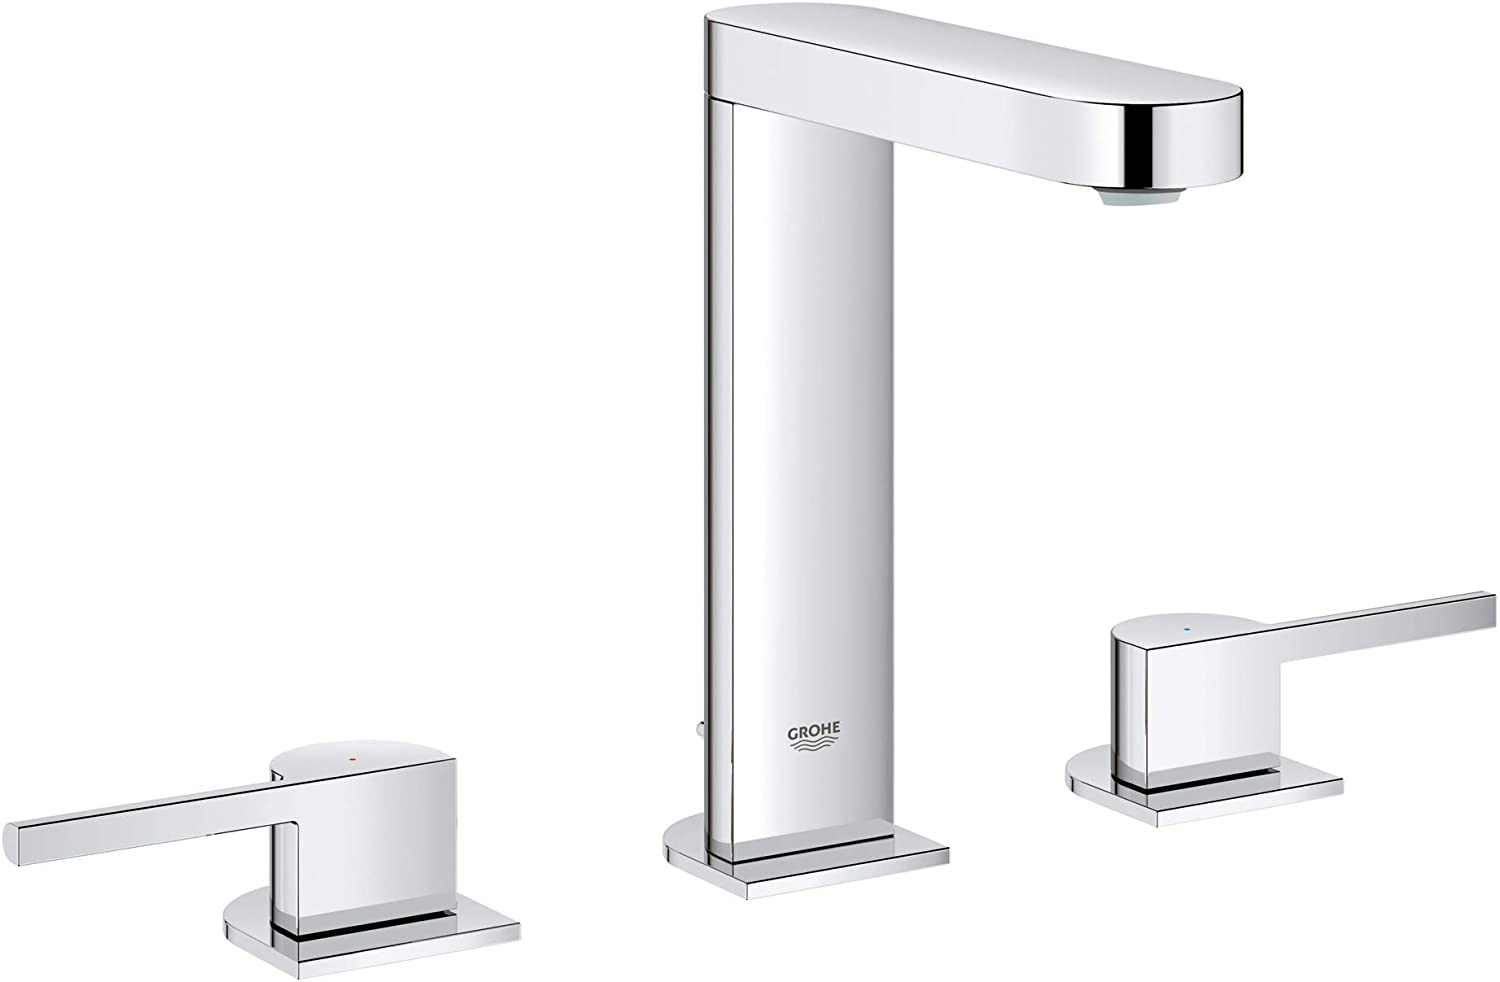 Grohe 20302003 Plus 8 inch Widespread Two-Handle Bathroom Faucet